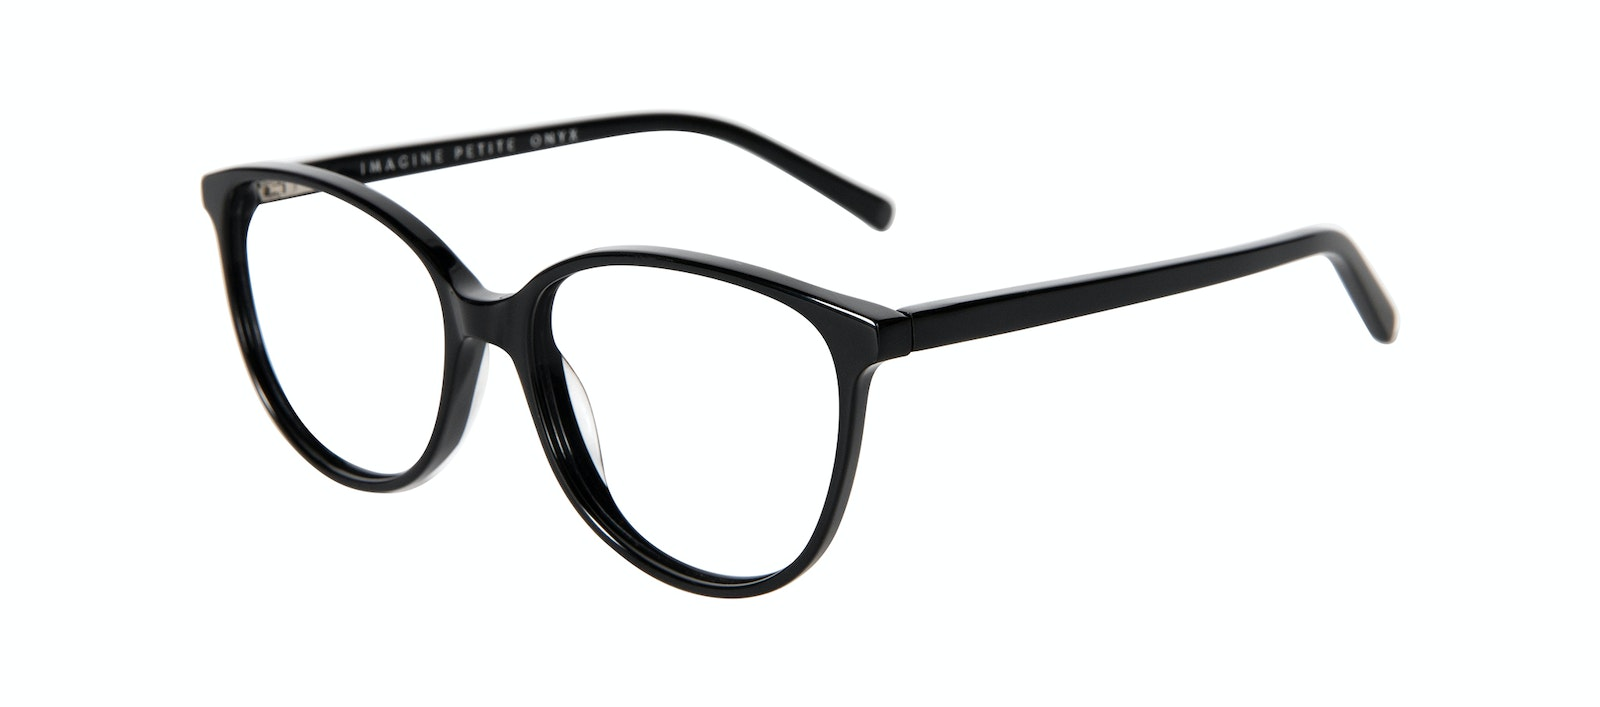 Affordable Fashion Glasses Round Eyeglasses Women Imagine Petite Onyx Tilt